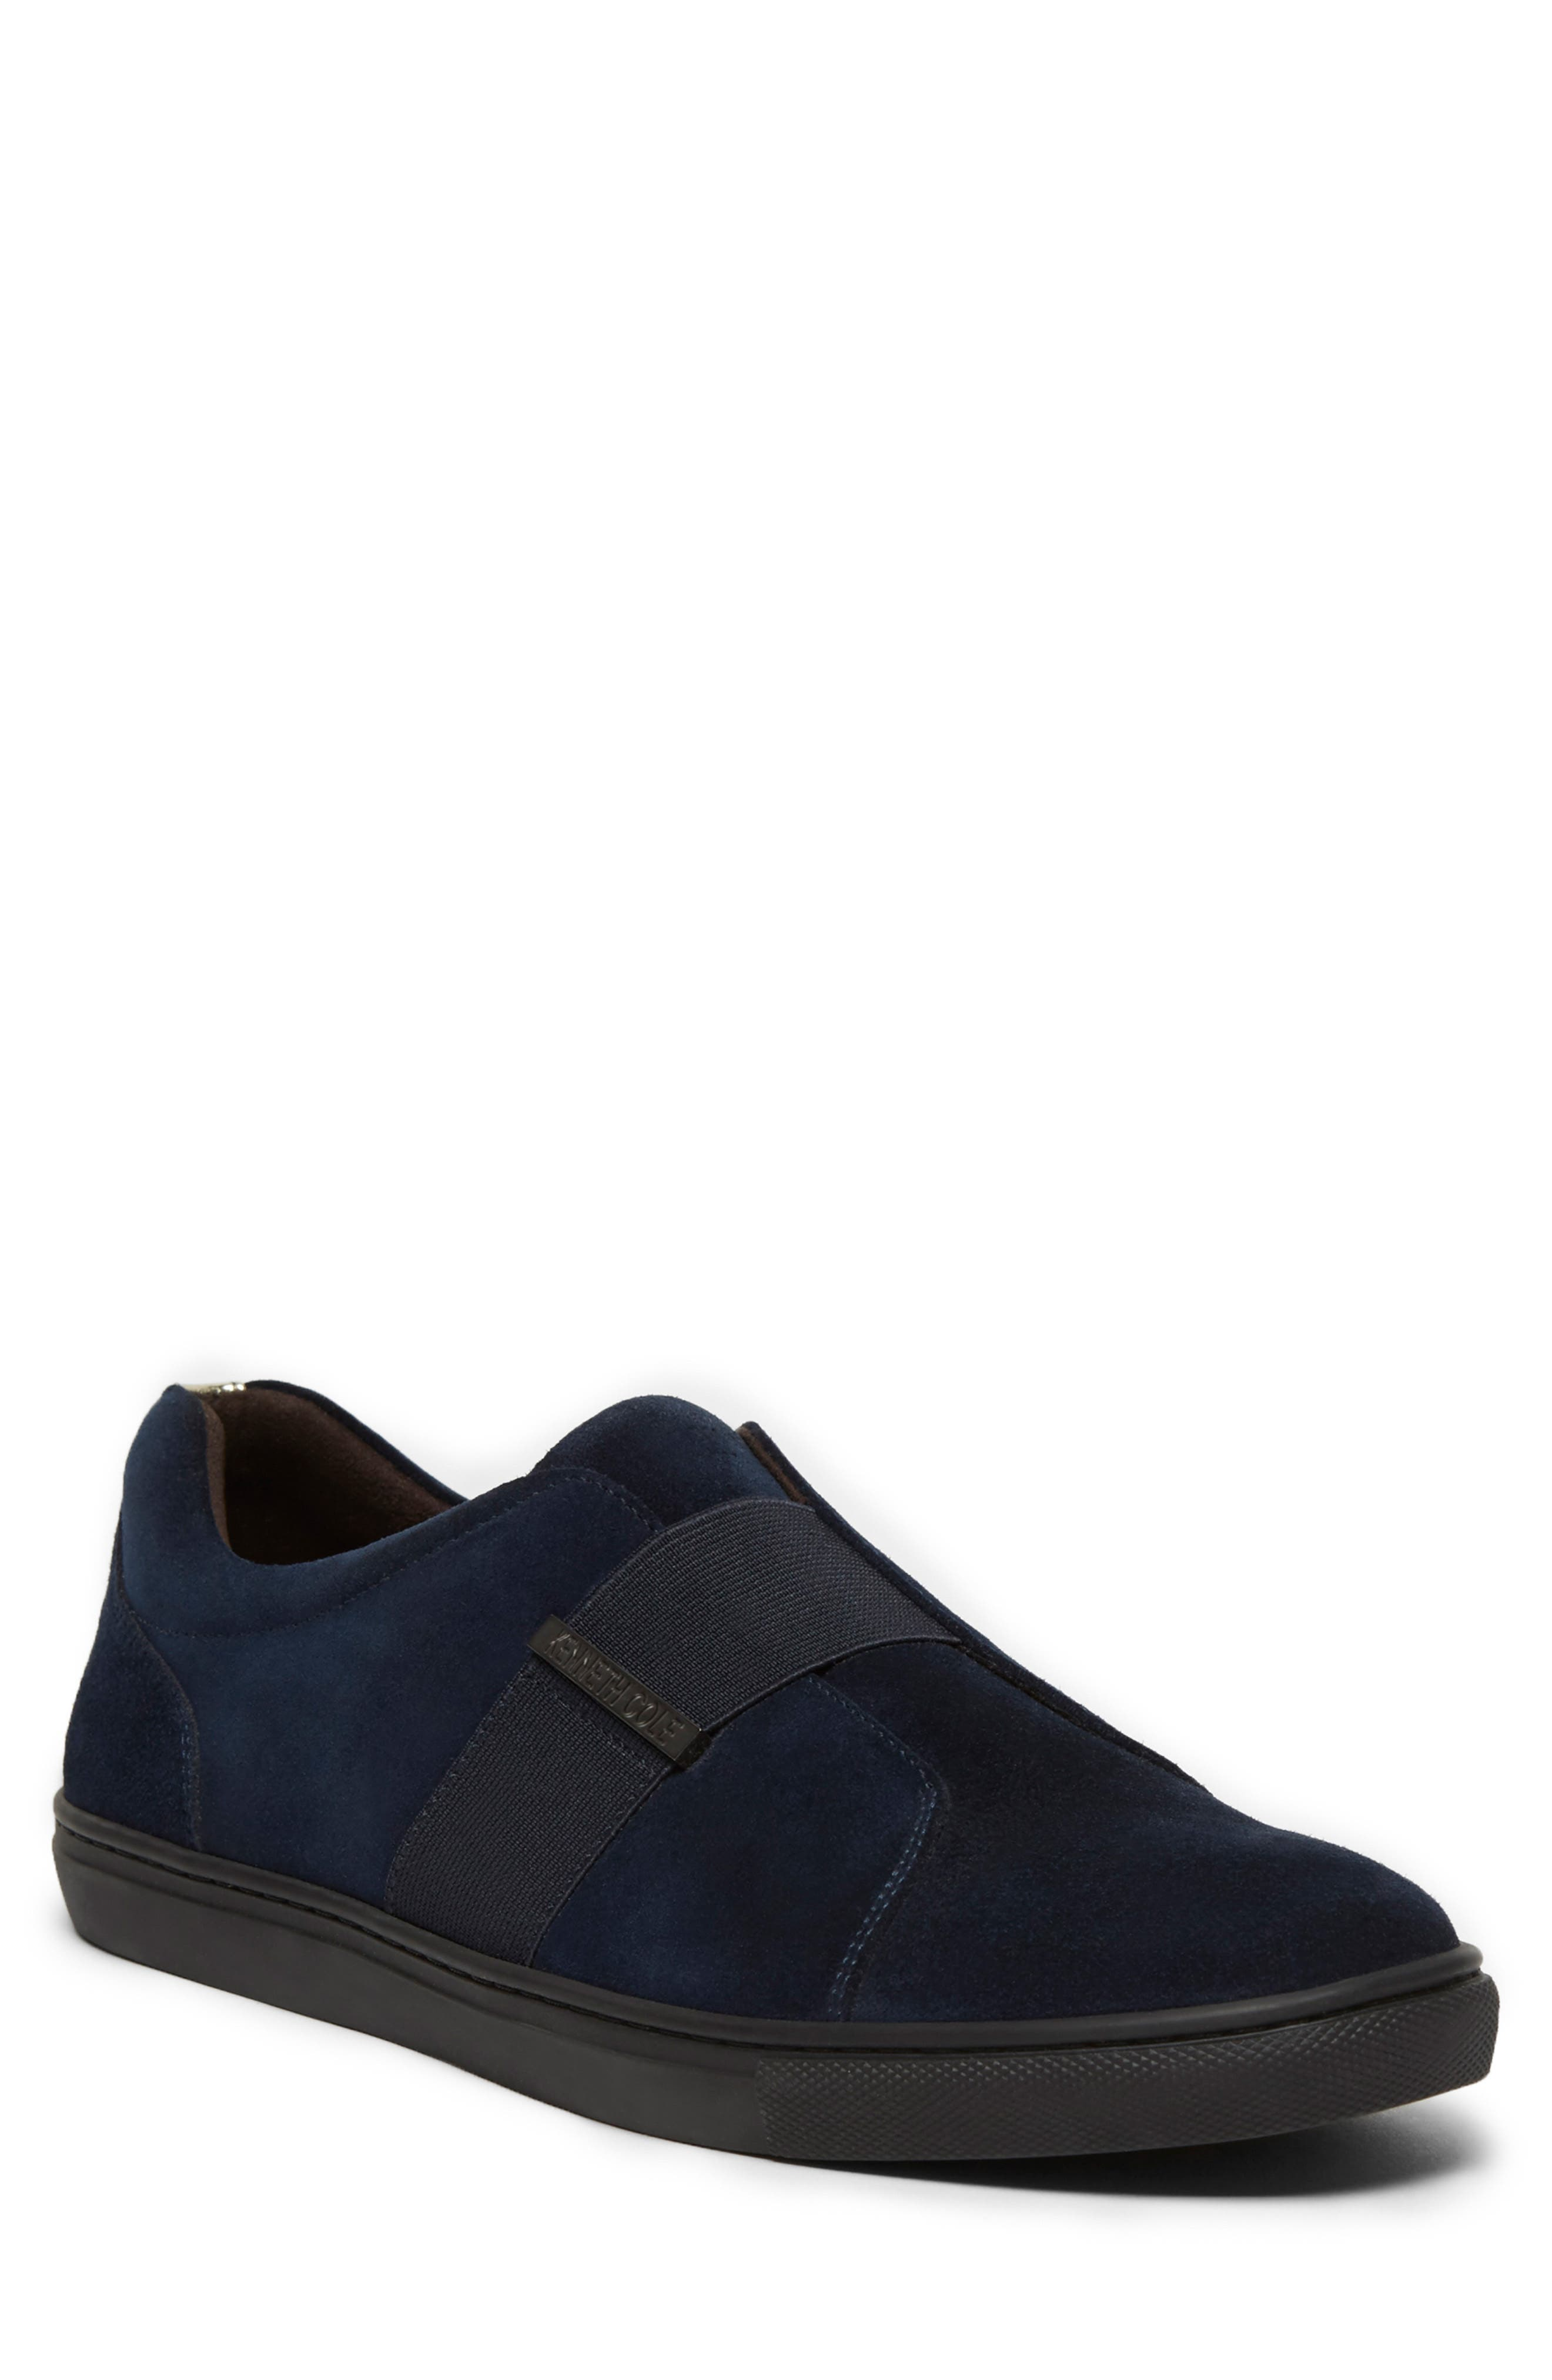 Kam Slip-On,                         Main,                         color, NAVY SUEDE